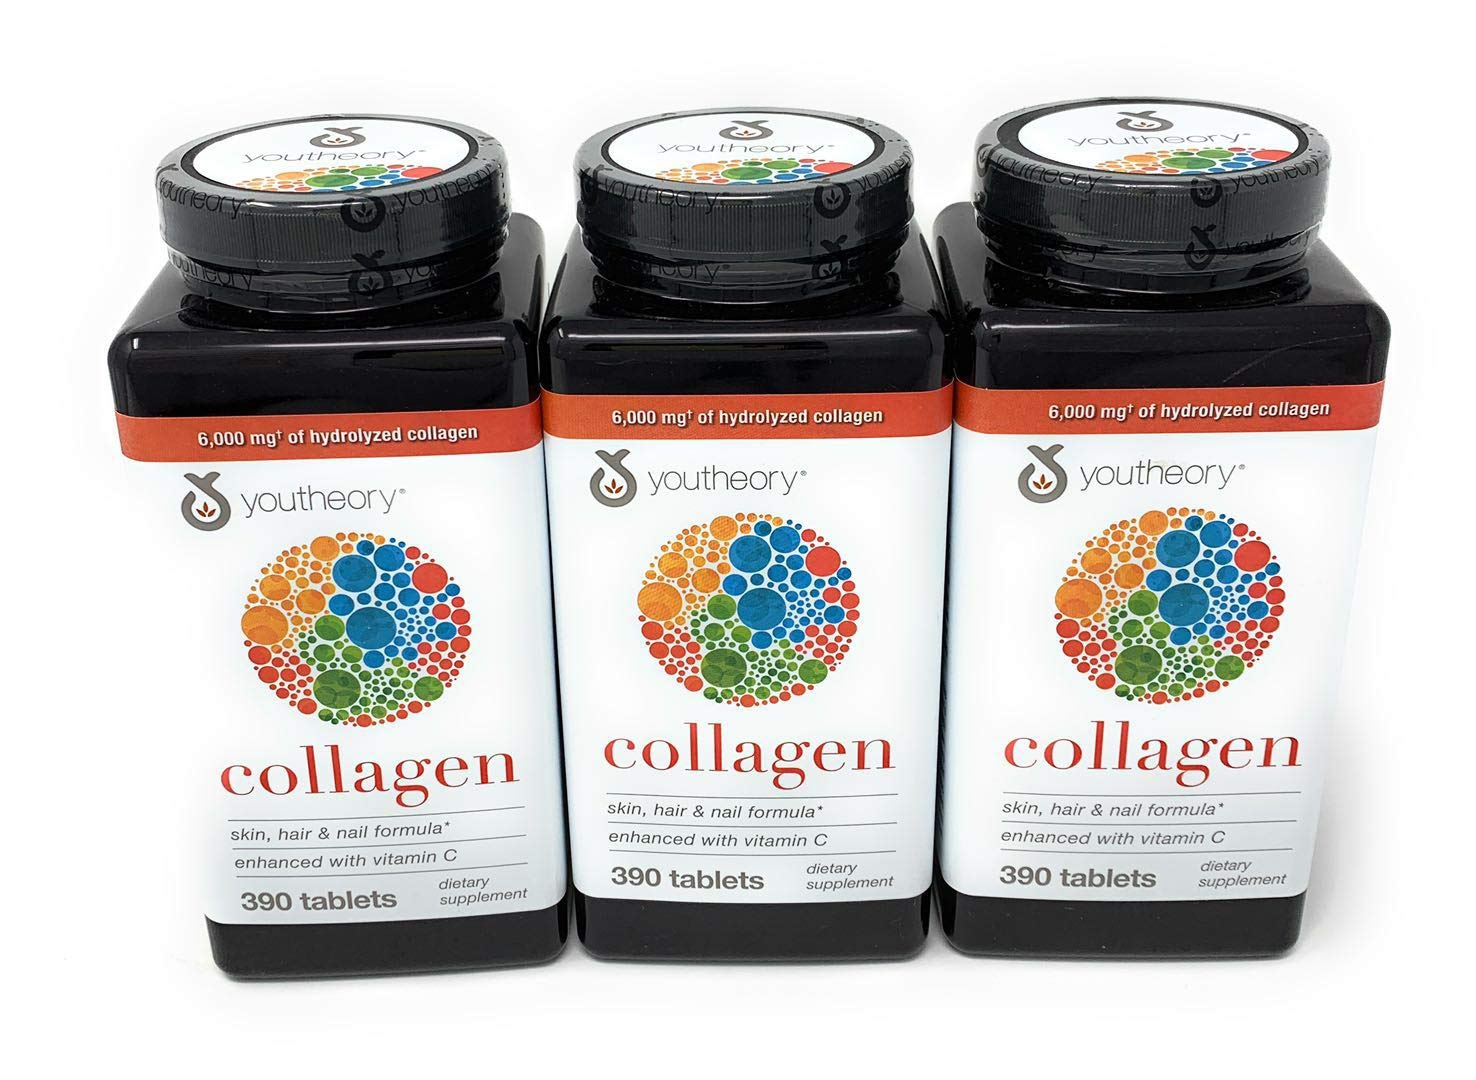 Collagen Youtheory 390